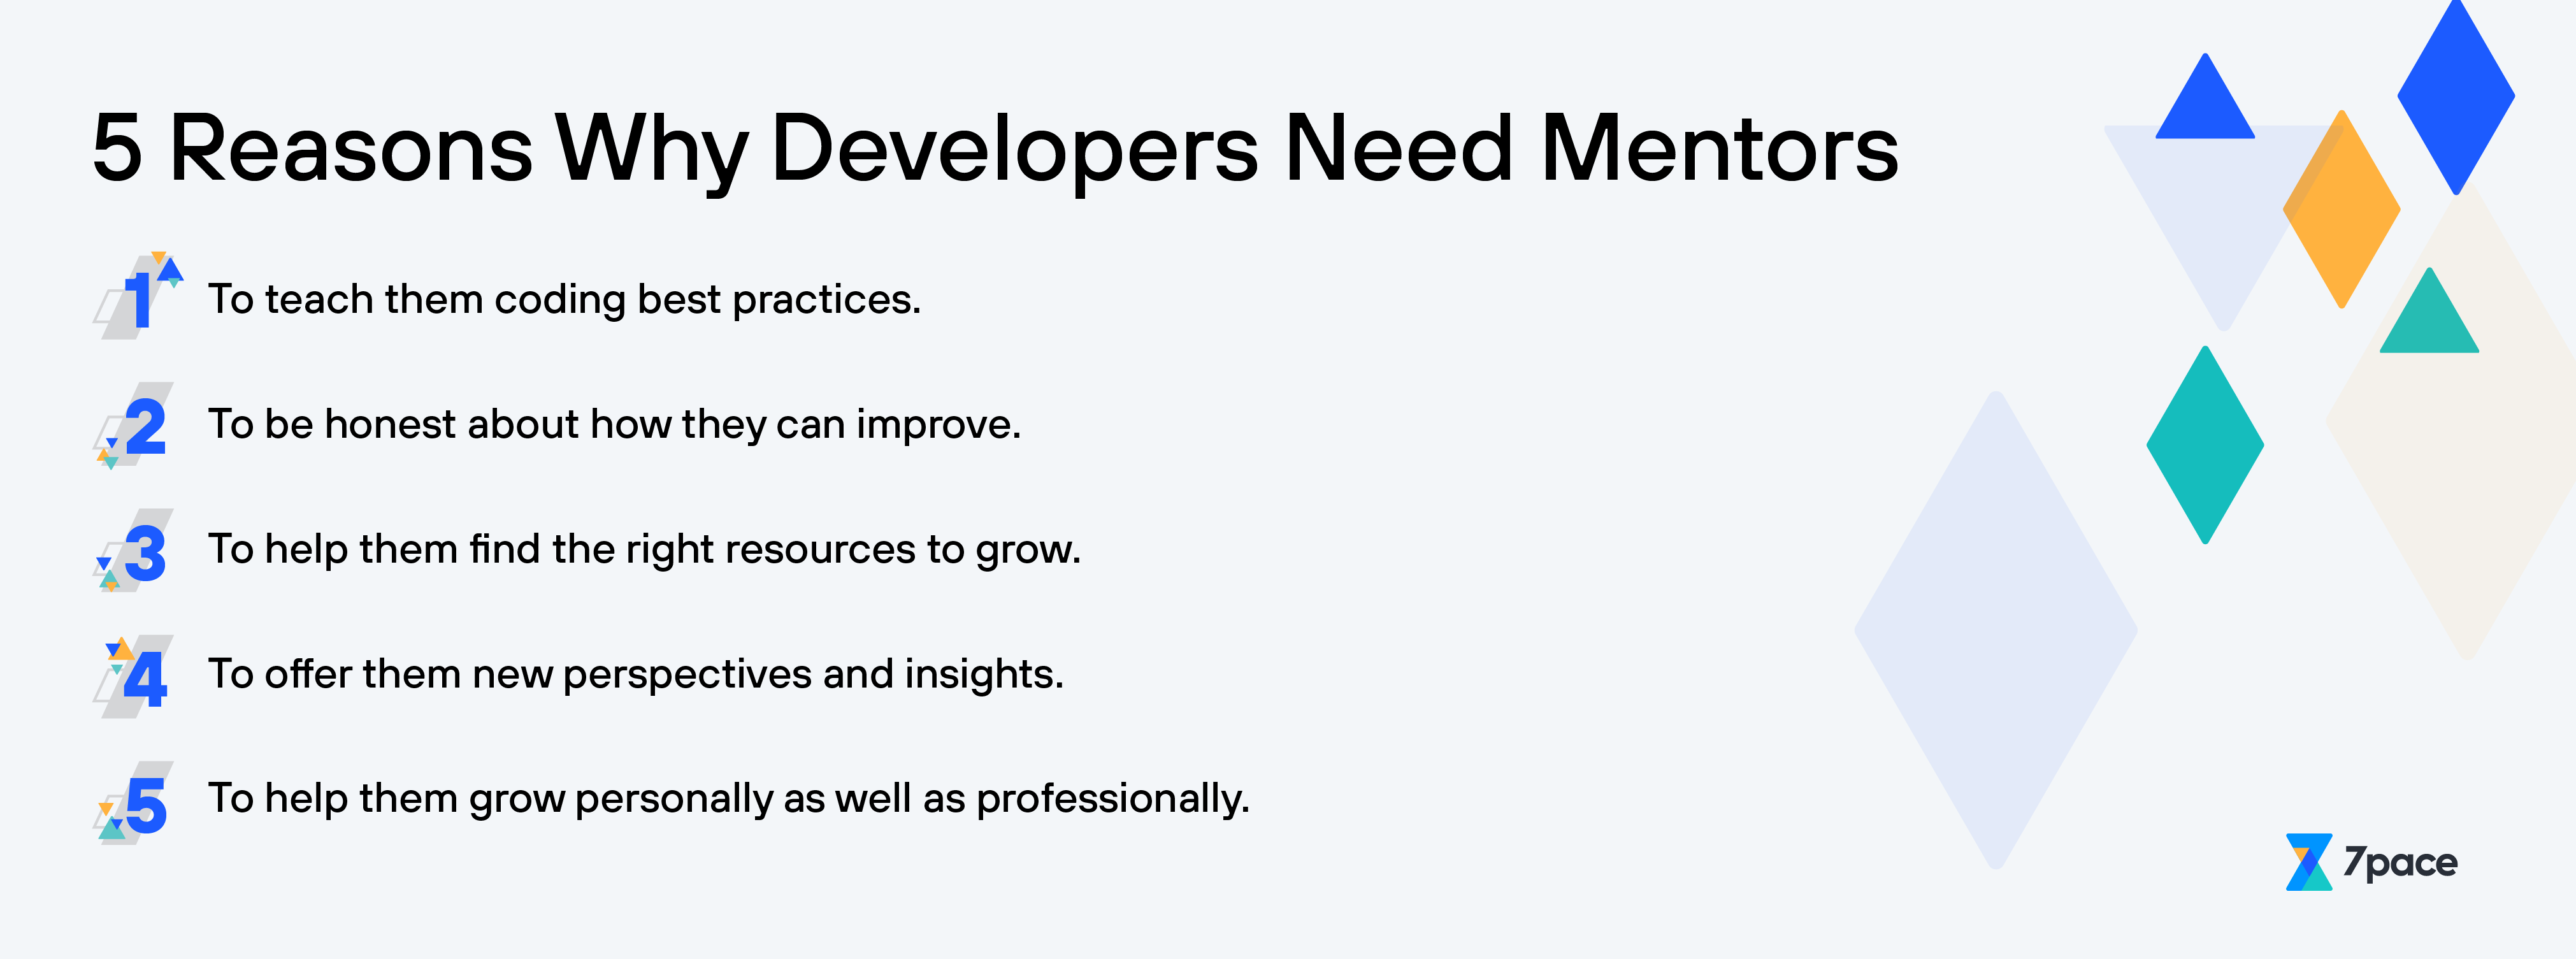 5 Reasons Why Developers Need Mentors